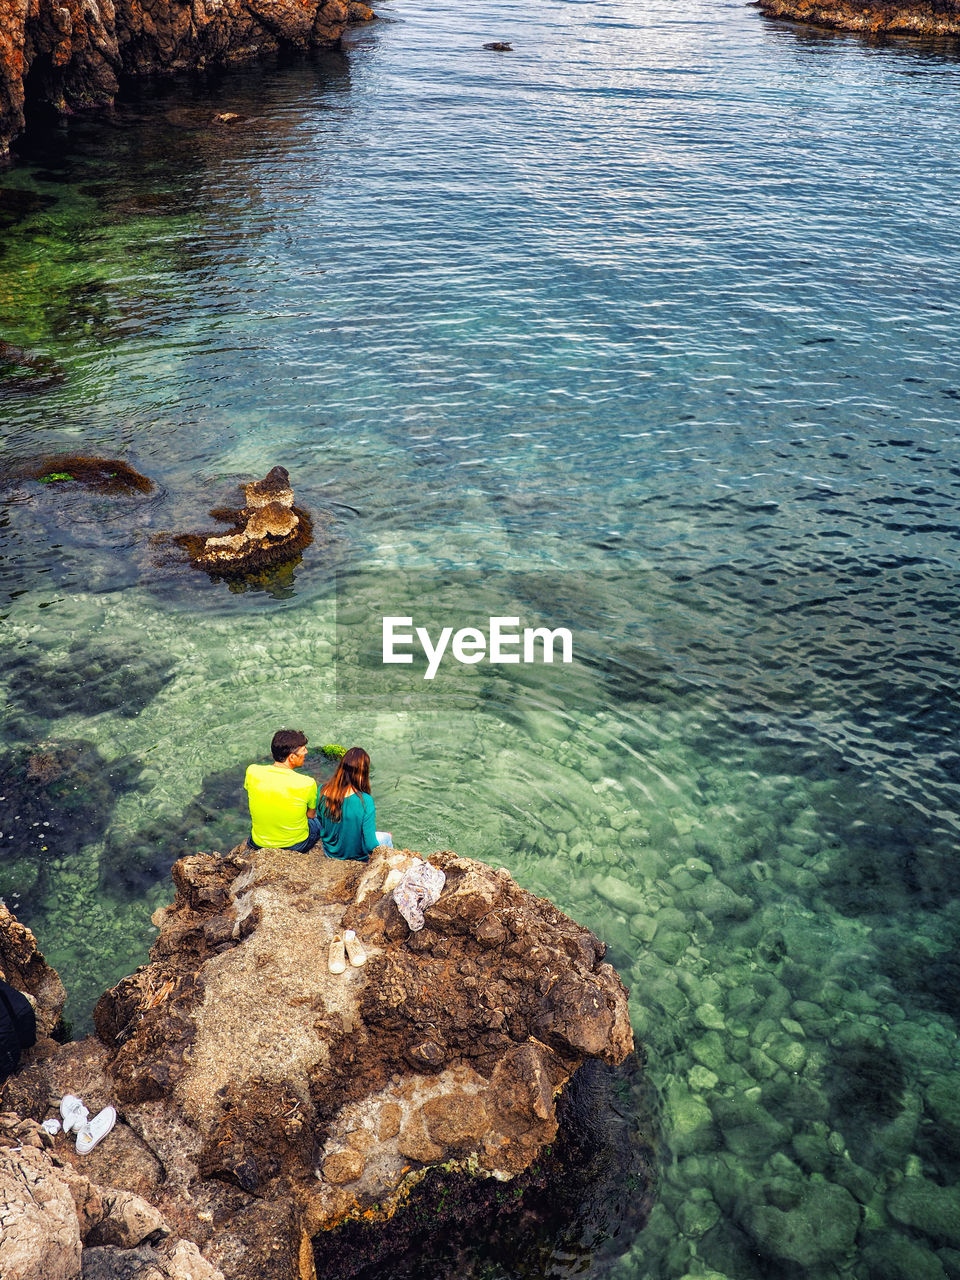 water, rock, solid, rock - object, high angle view, real people, men, sea, day, togetherness, nature, people, beauty in nature, women, sitting, leisure activity, lifestyles, outdoors, turquoise colored